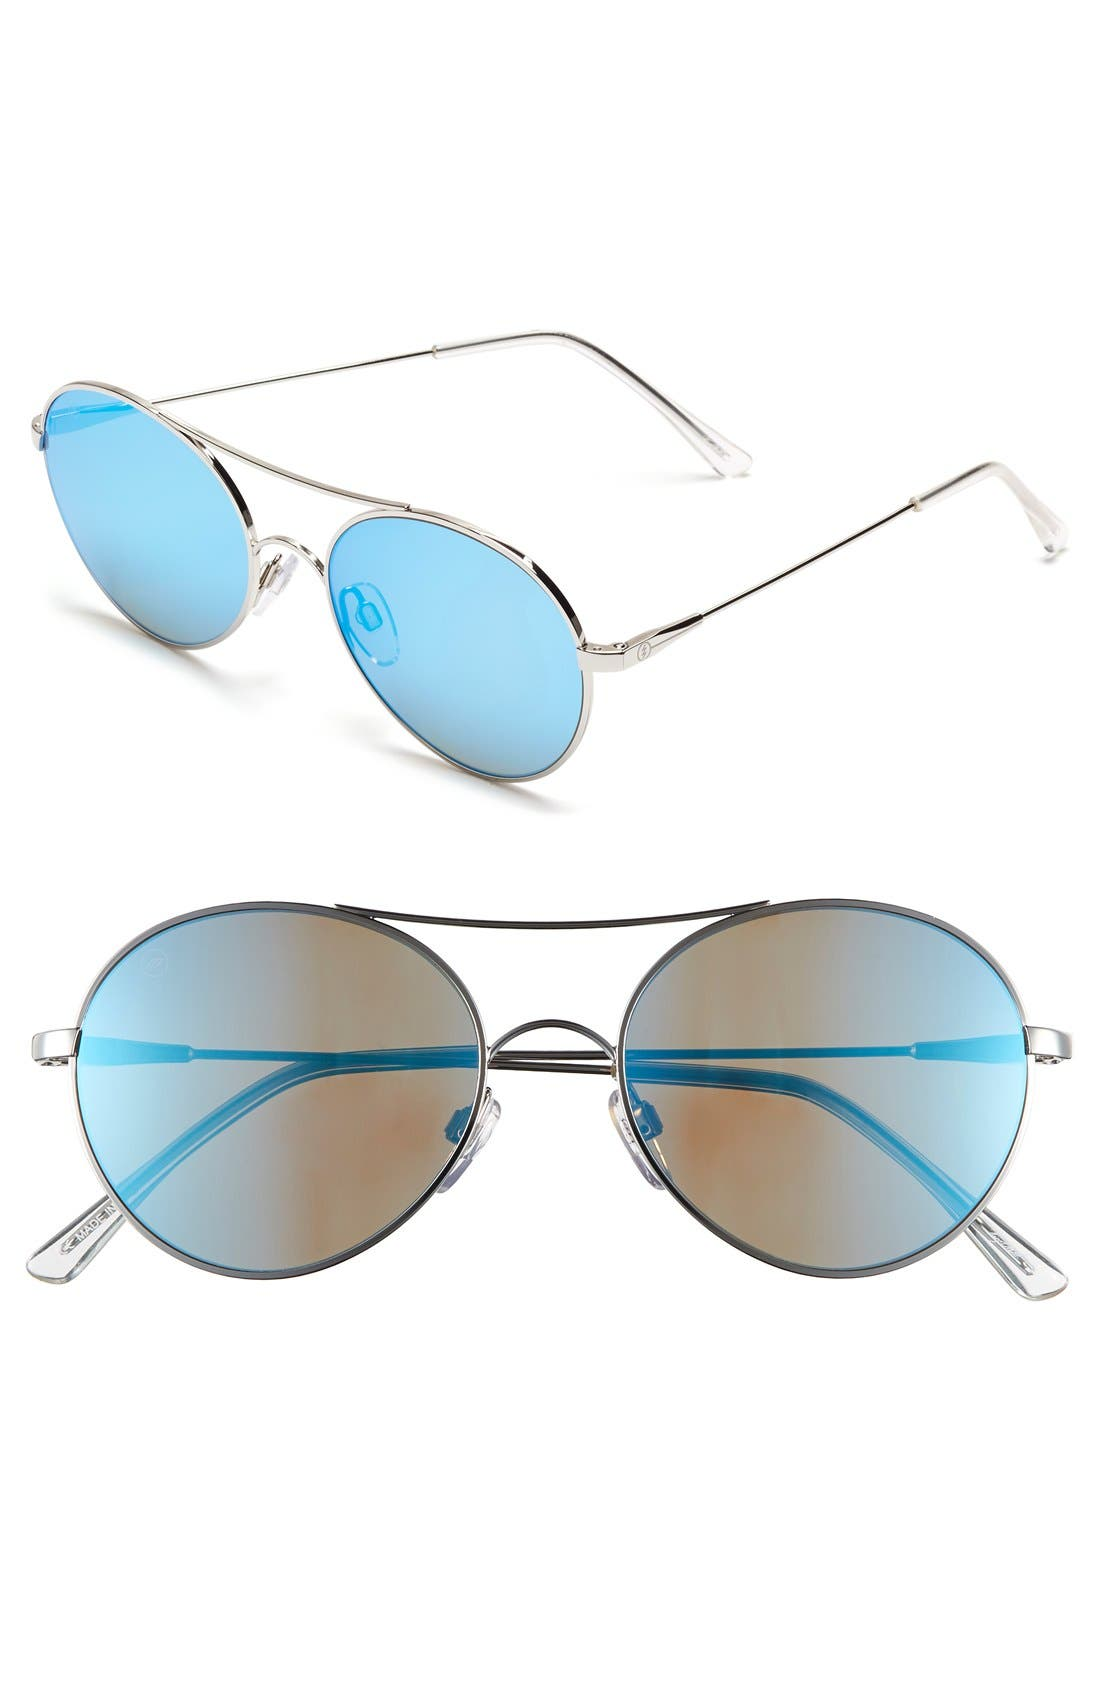 Main Image - ELECTRIC 'Huxley' 53mm Round Sunglasses